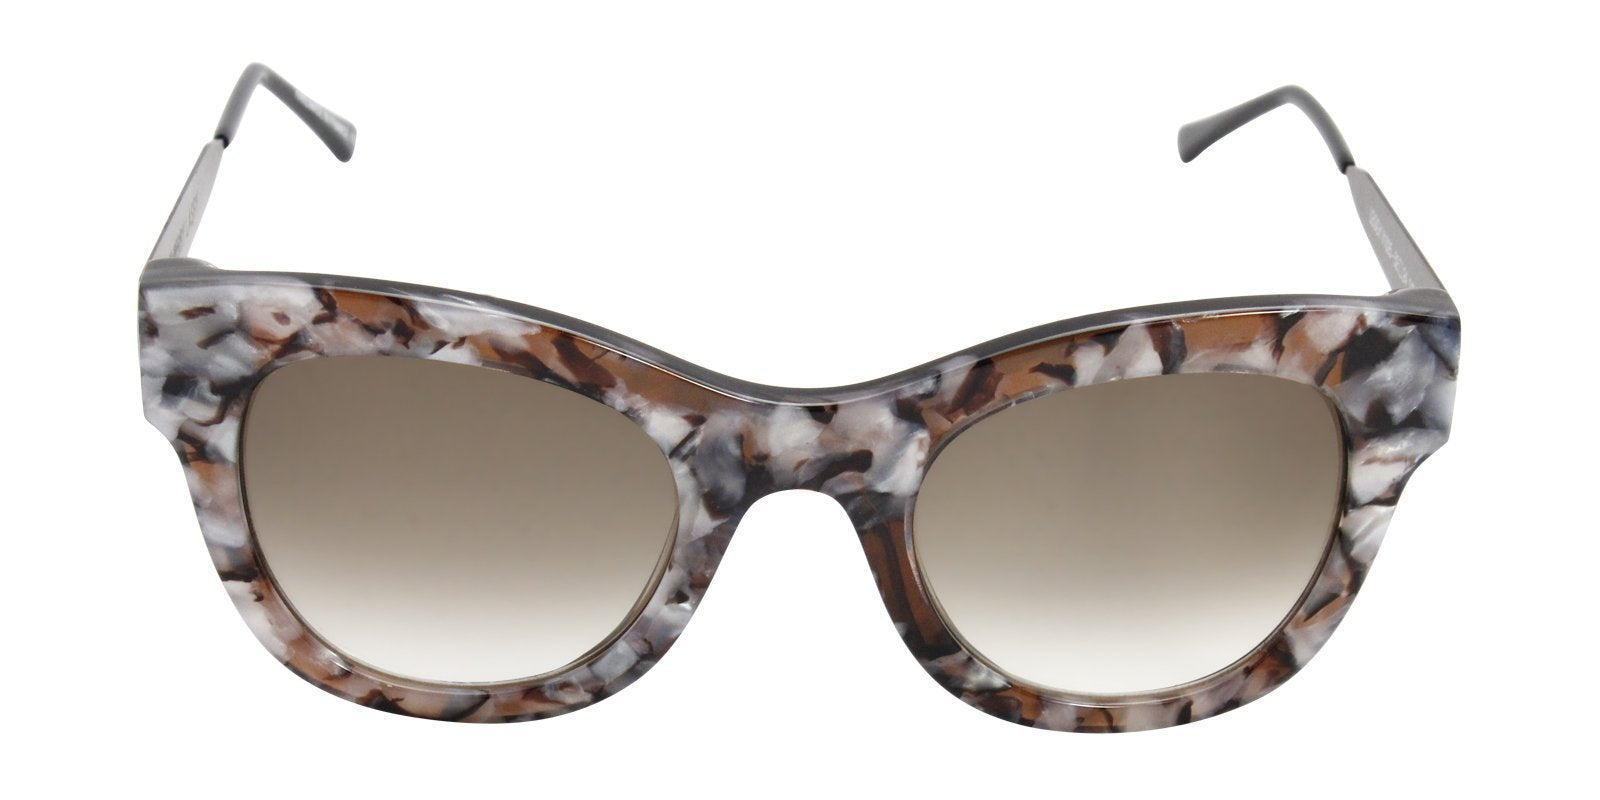 Thierry Lasry - Leggy Brown Oval Women Sunglasses - 52mm-Sunglasses-Designer Eyes